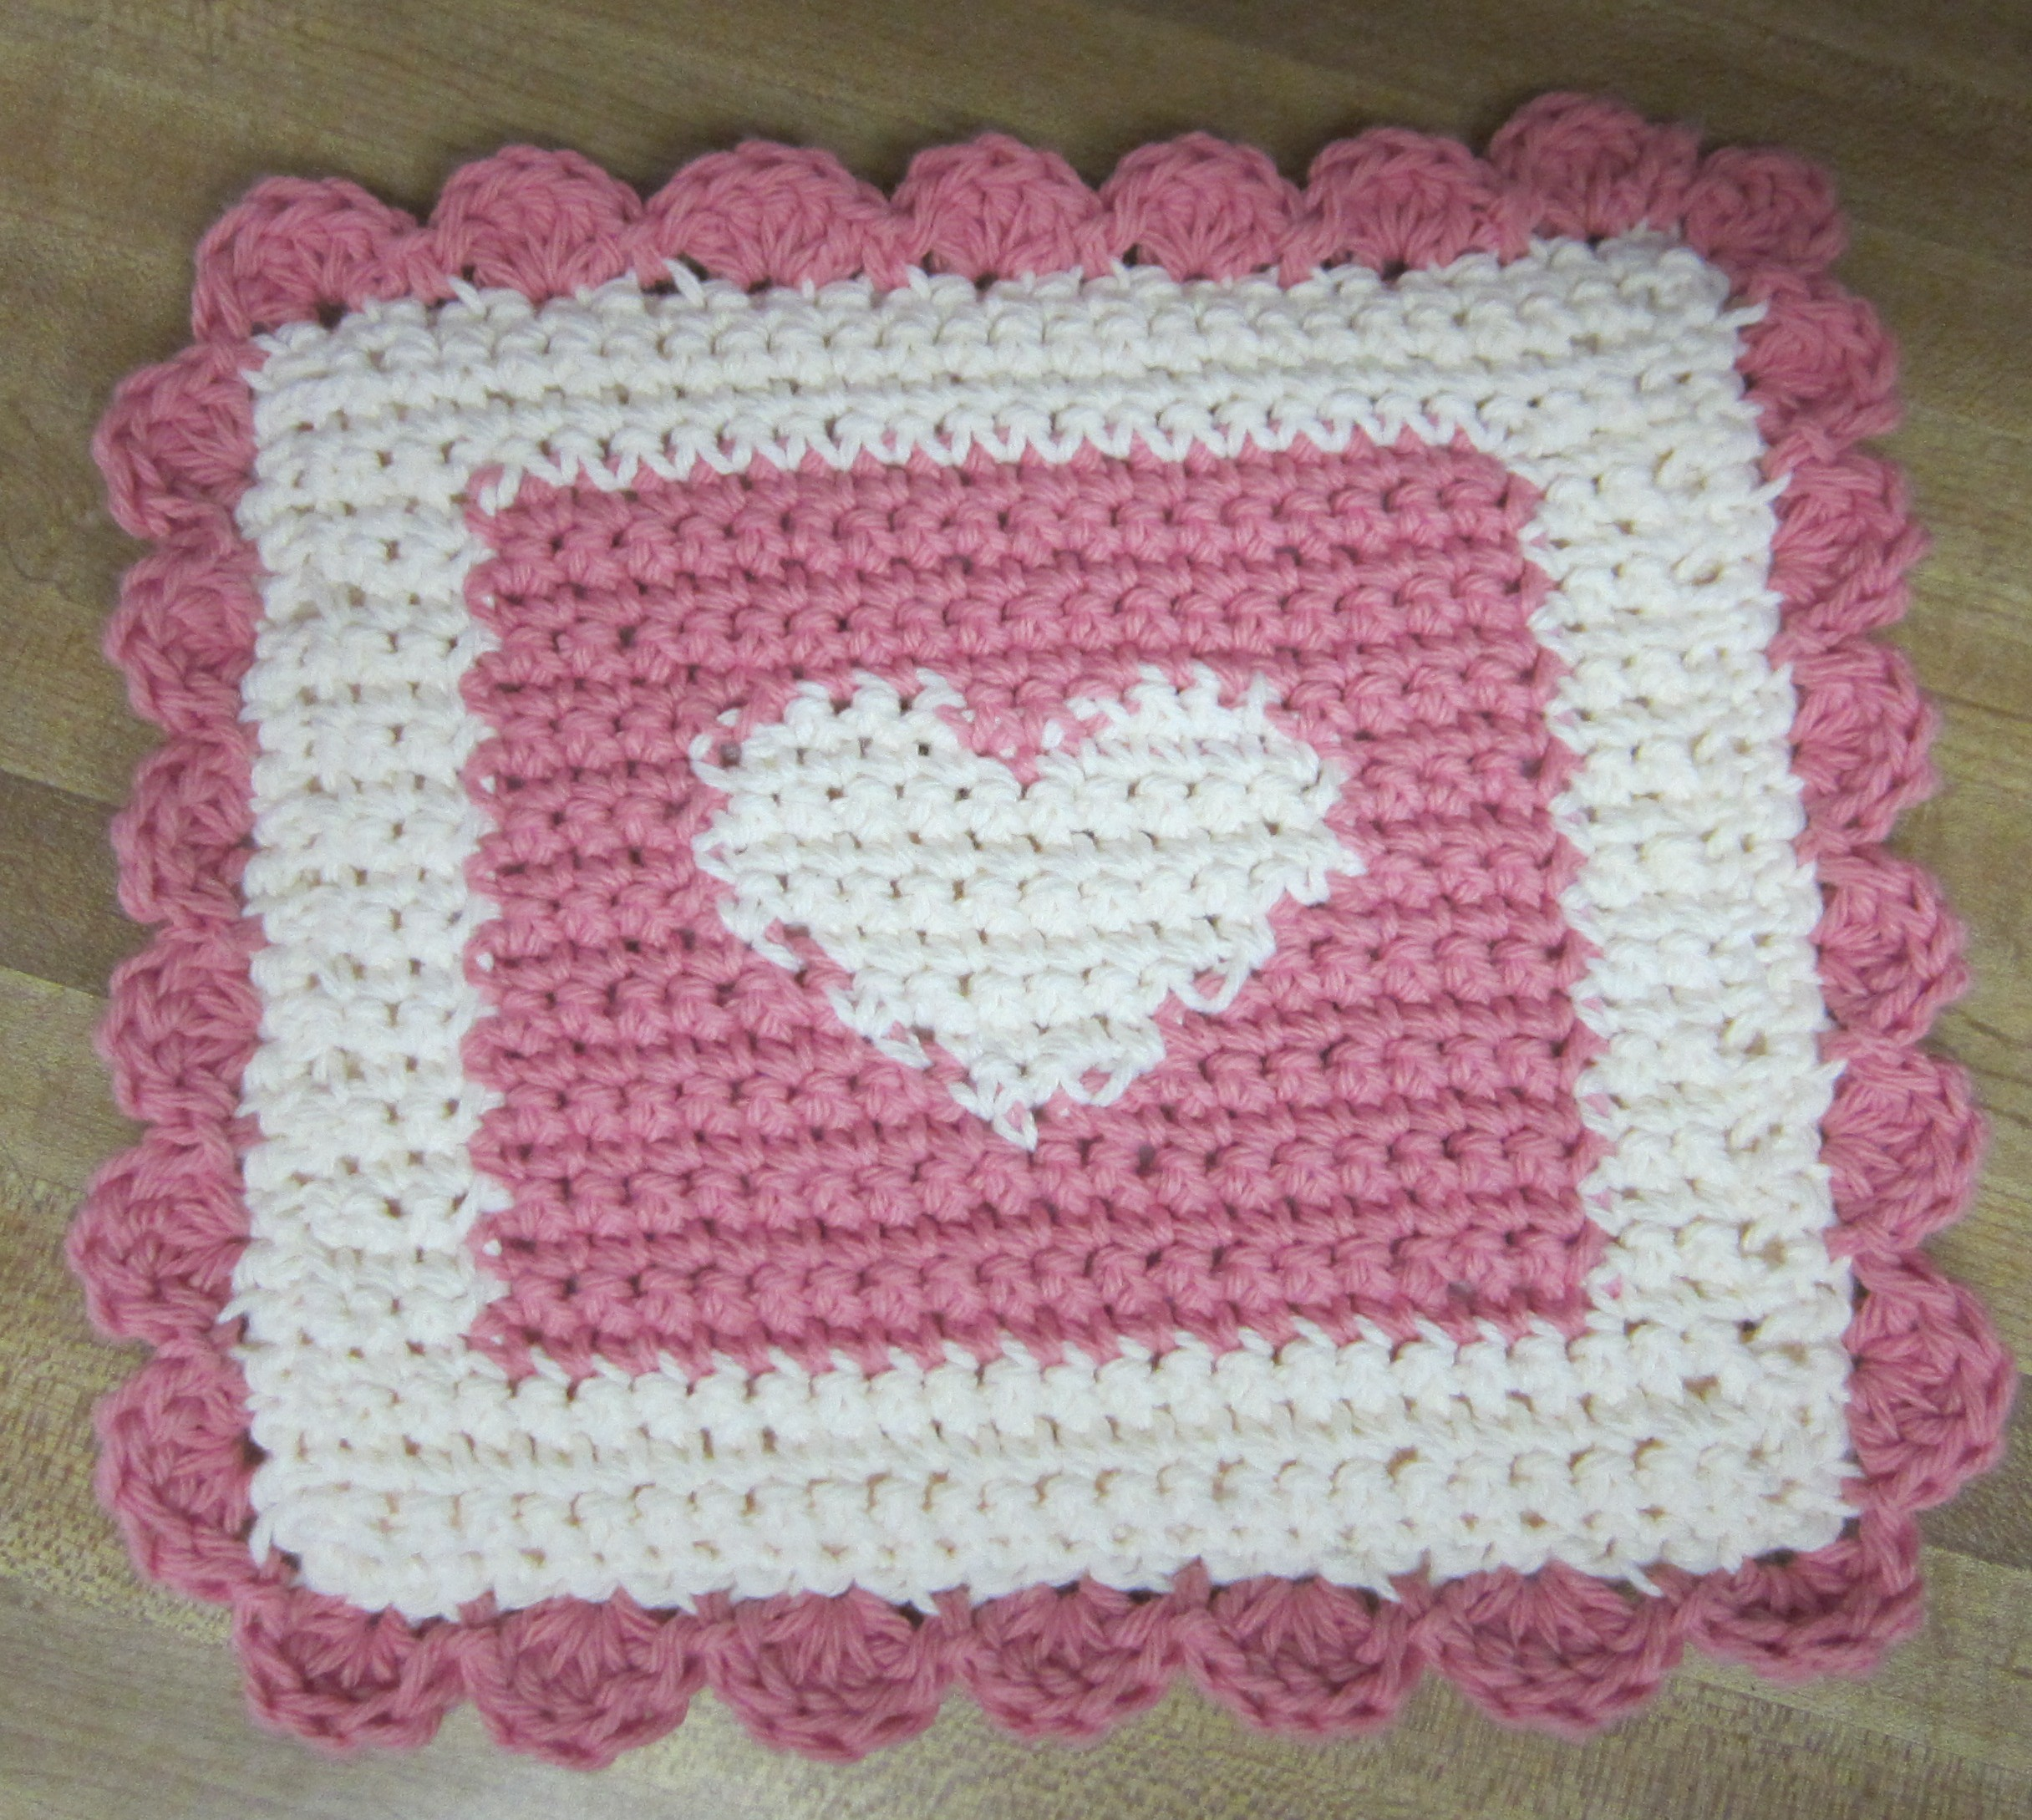 Crochet Potholders/Hot Pads Double Thickness Set of 2 Pink and White ...